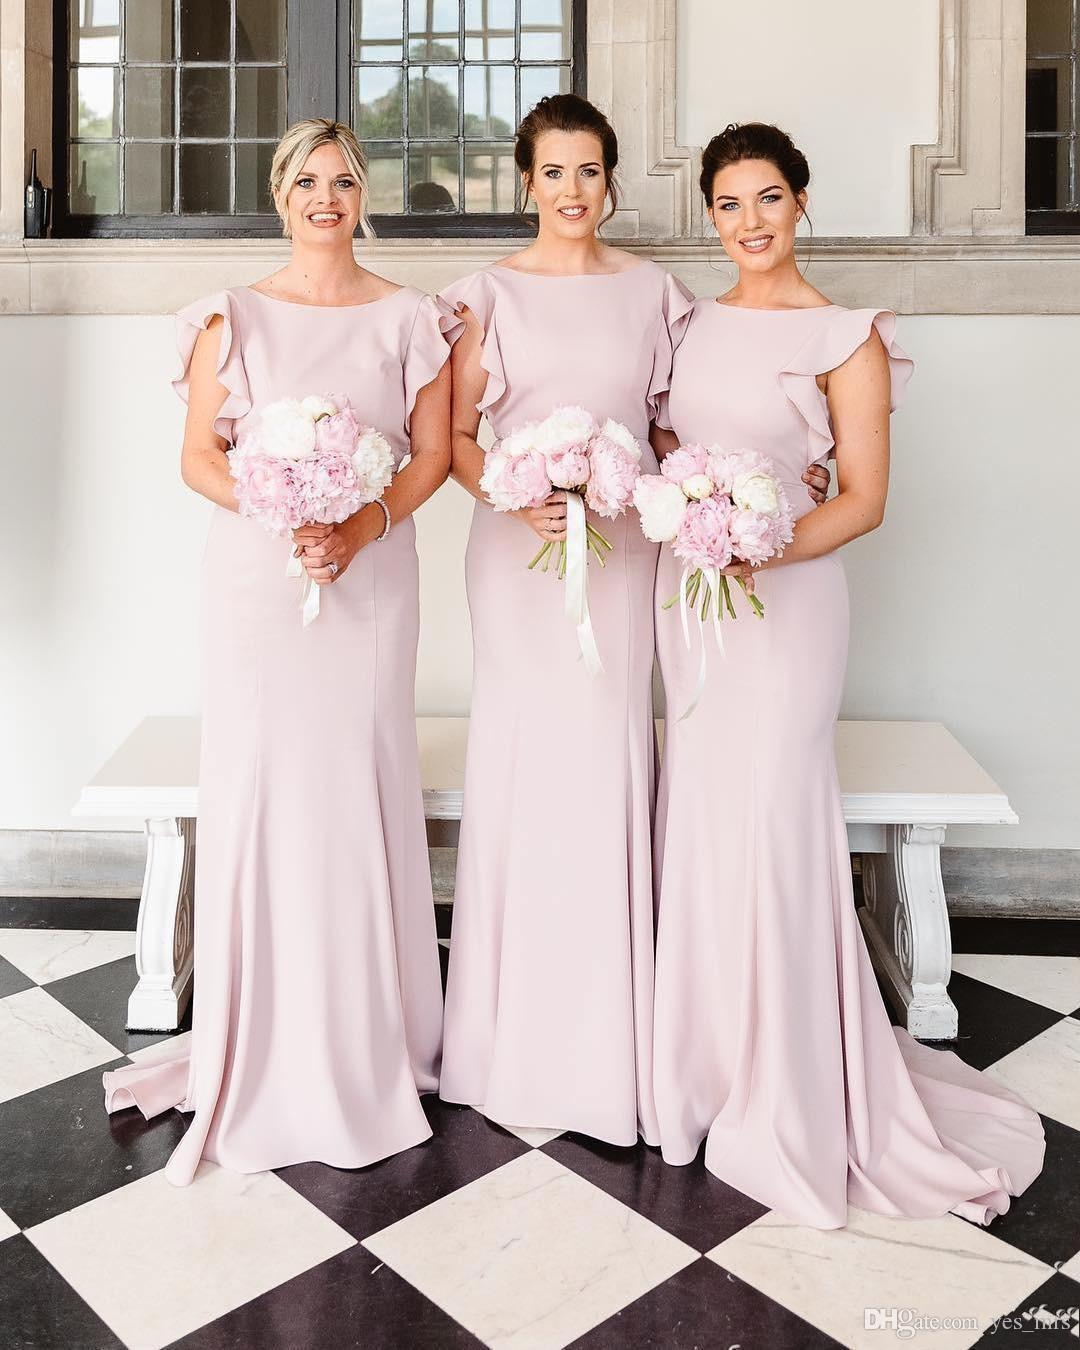 25eccf32cf 2019 New Cheap Bridesmaid Dresses Pink Ruffles Sleeves Jewel Neck Sheath  Open Back Long Wedding Guest Dress Plus Size Maid Of Honor Gowns Floral  Print ...